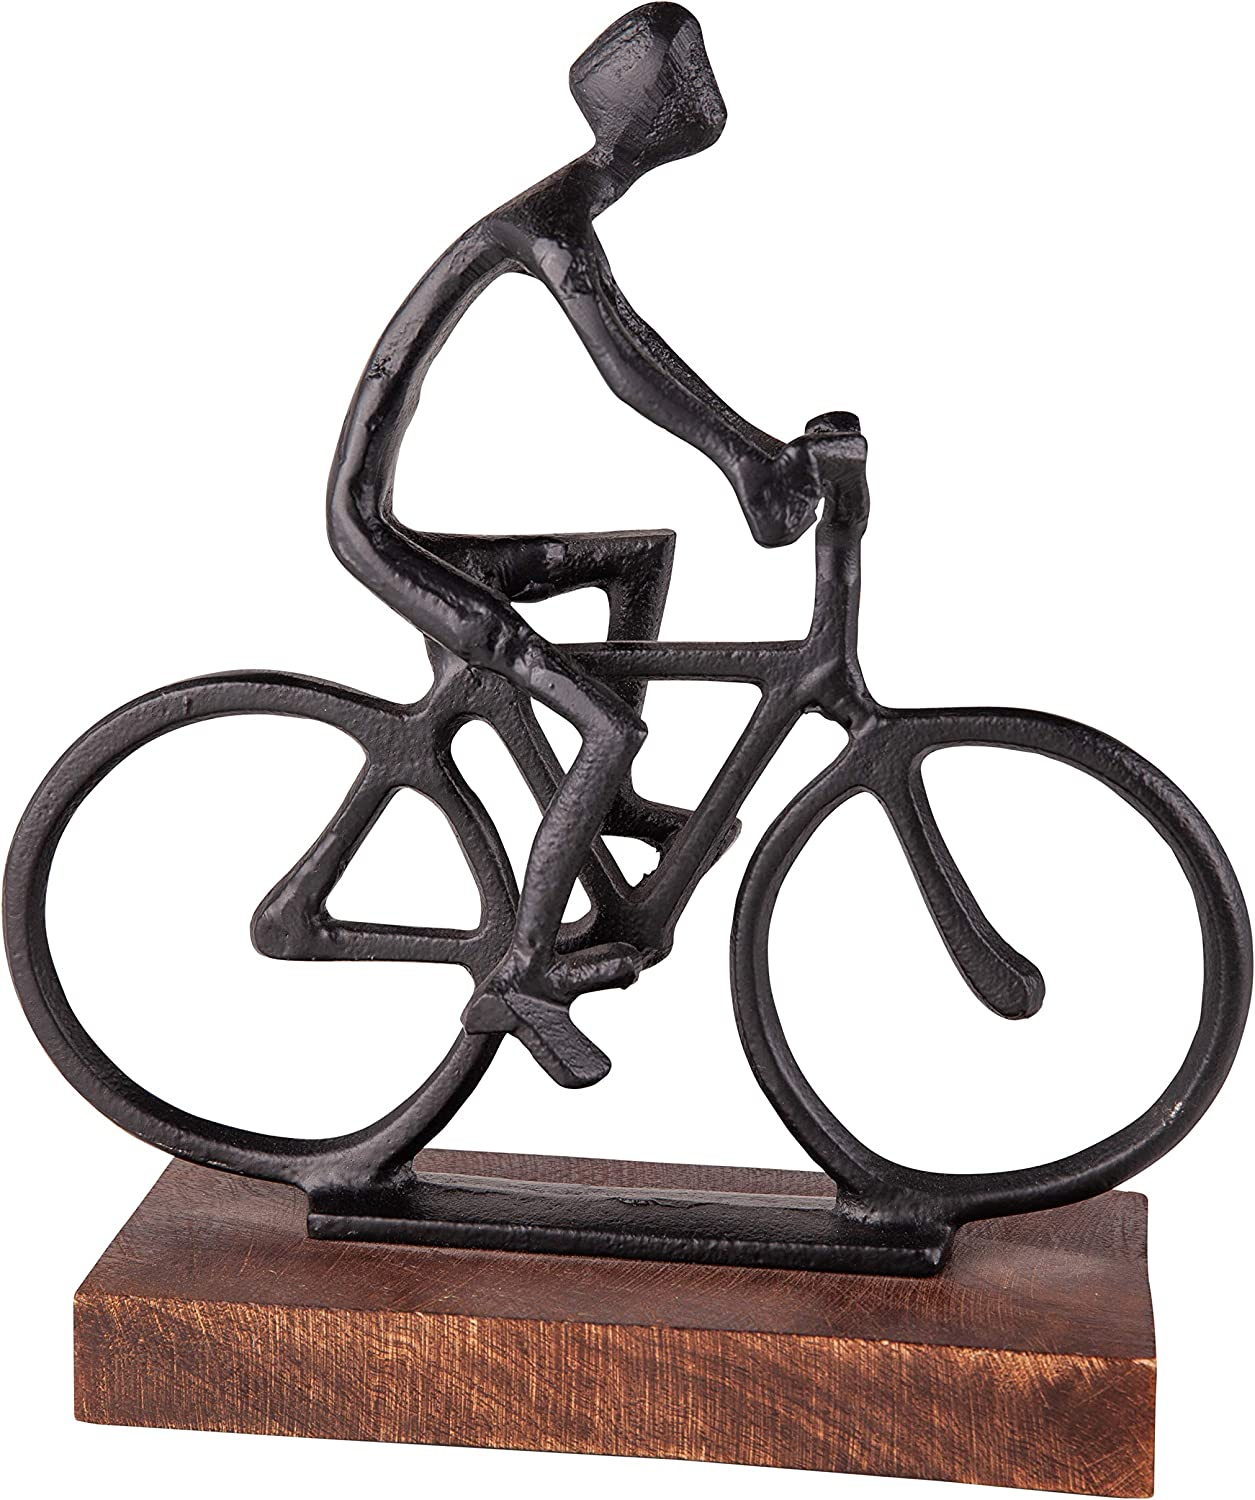 Danya B Bike Ride Cruiser Sculpture, Statues for Home Décor, Aluminum with Wooden Base, Modern Design for Accent Decoration in Home or Office and Gift for Bike Enthusiast